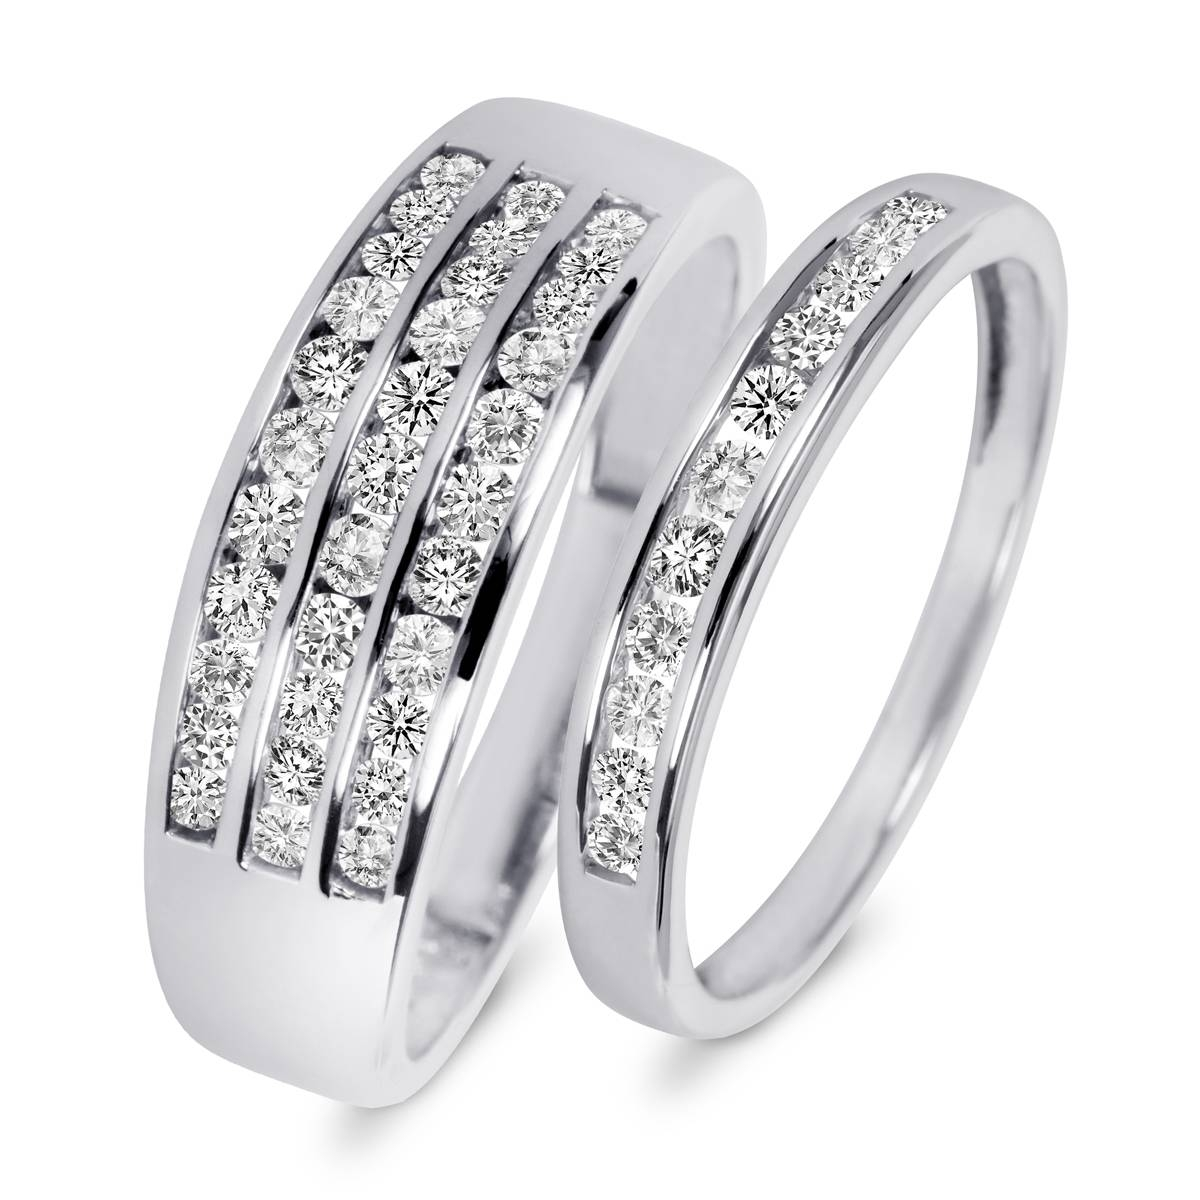 7/8 Carat T.w. Diamond His And Hers Wedding Rings 10K White Gold In His And Her Wedding Bands Sets (Gallery 110 of 339)